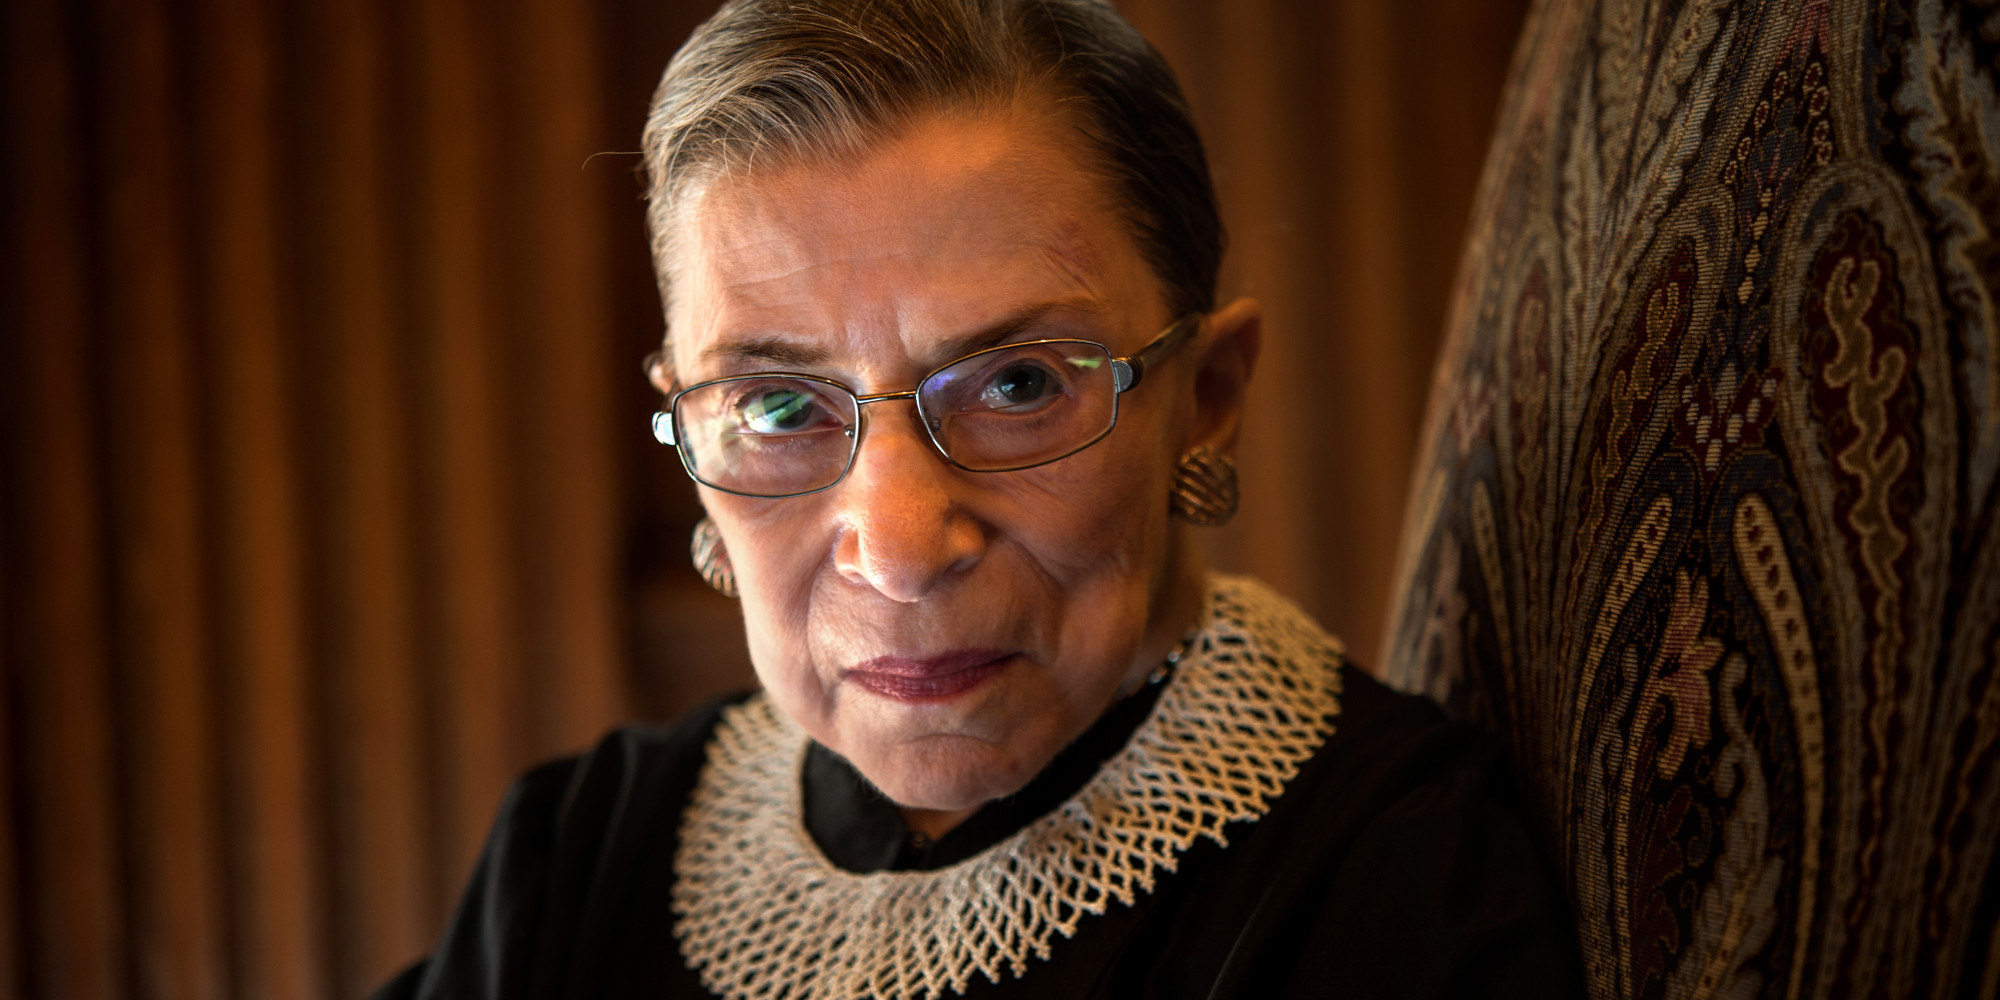 WASHINGTON, DC - AUGUST 30: Supreme Court Justice Ruth Bader Ginsburg, celebrating her 20th anniversary on the bench, is photographed in the West conference room at the U.S. Supreme Court in Washington, D.C., on Friday, August 30, 2013. (Photo by Nikki Kahn/The Washington Post via Getty Images)